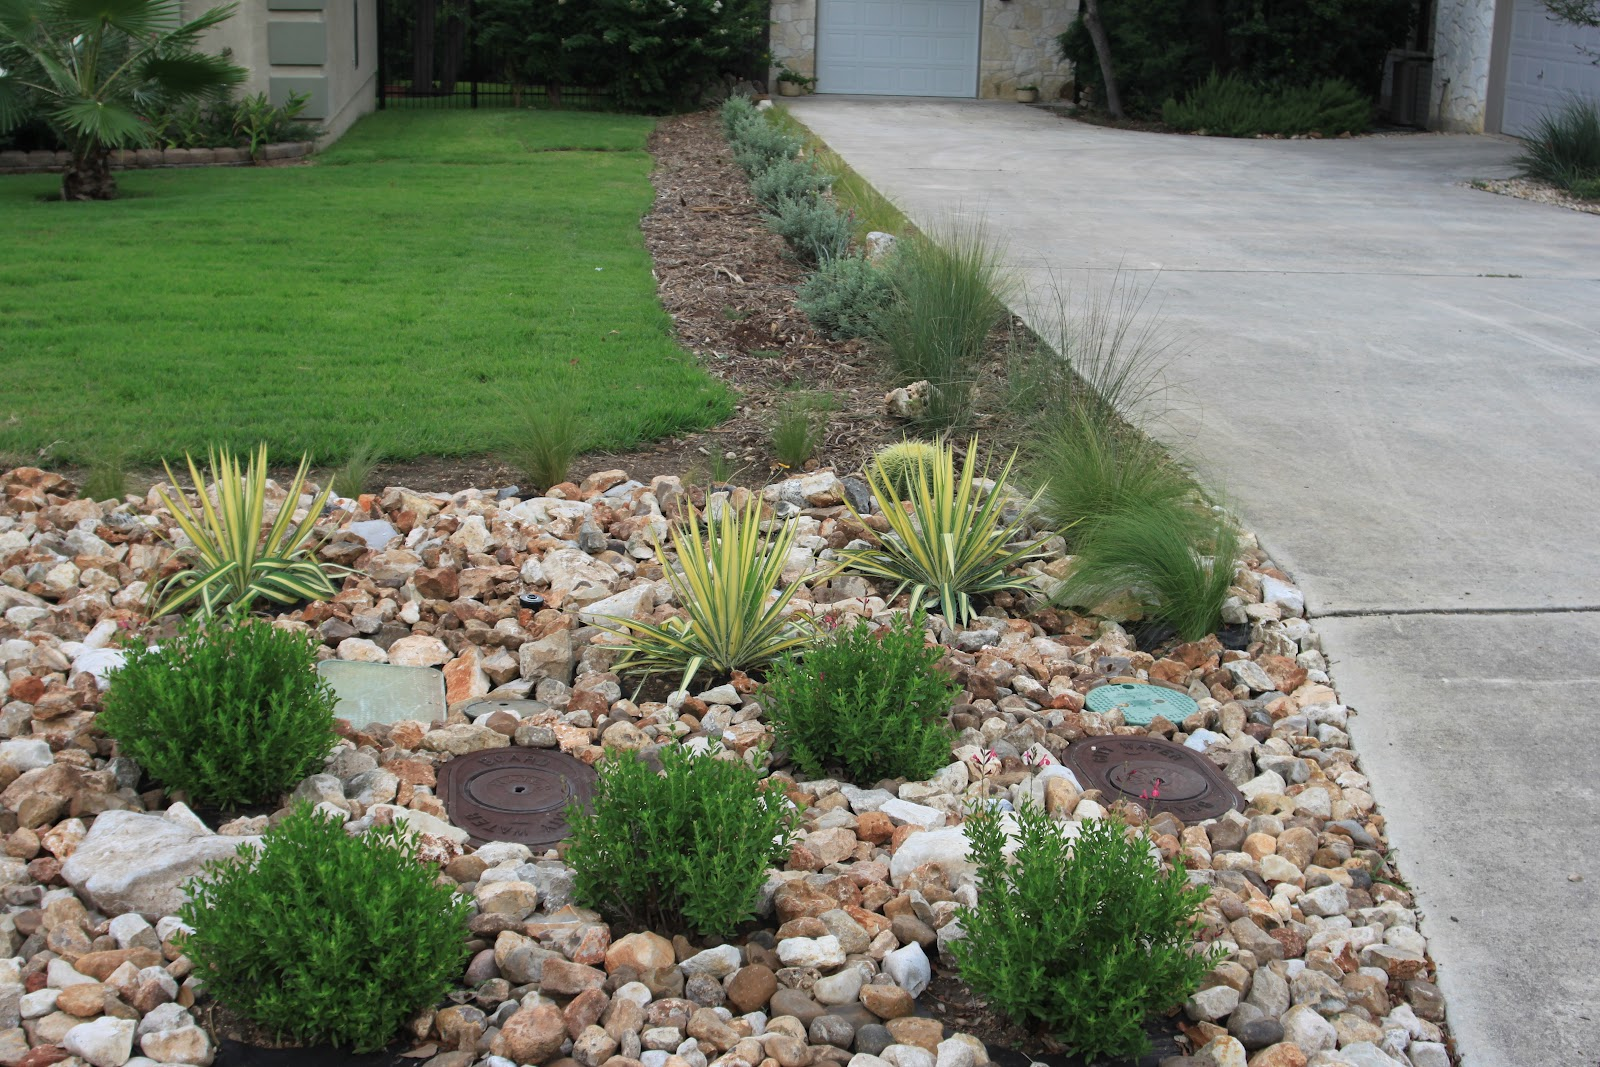 Willing landscape: Front lawn landscaping ideas using ...